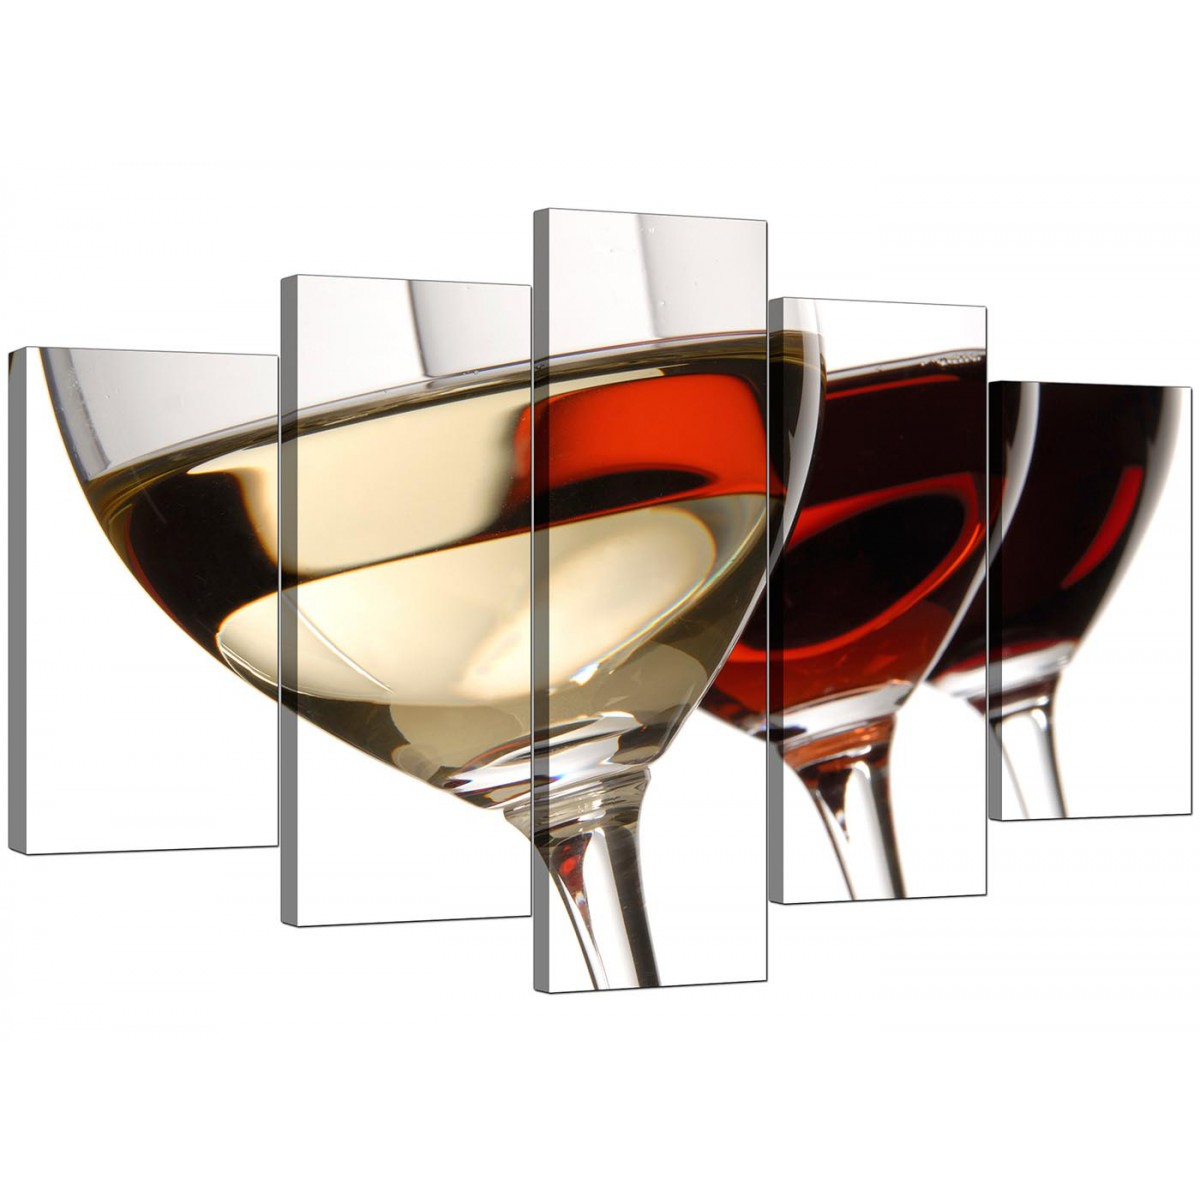 Extra large wine glasses canvas prints 5 panel in red Large wine glasses cheap